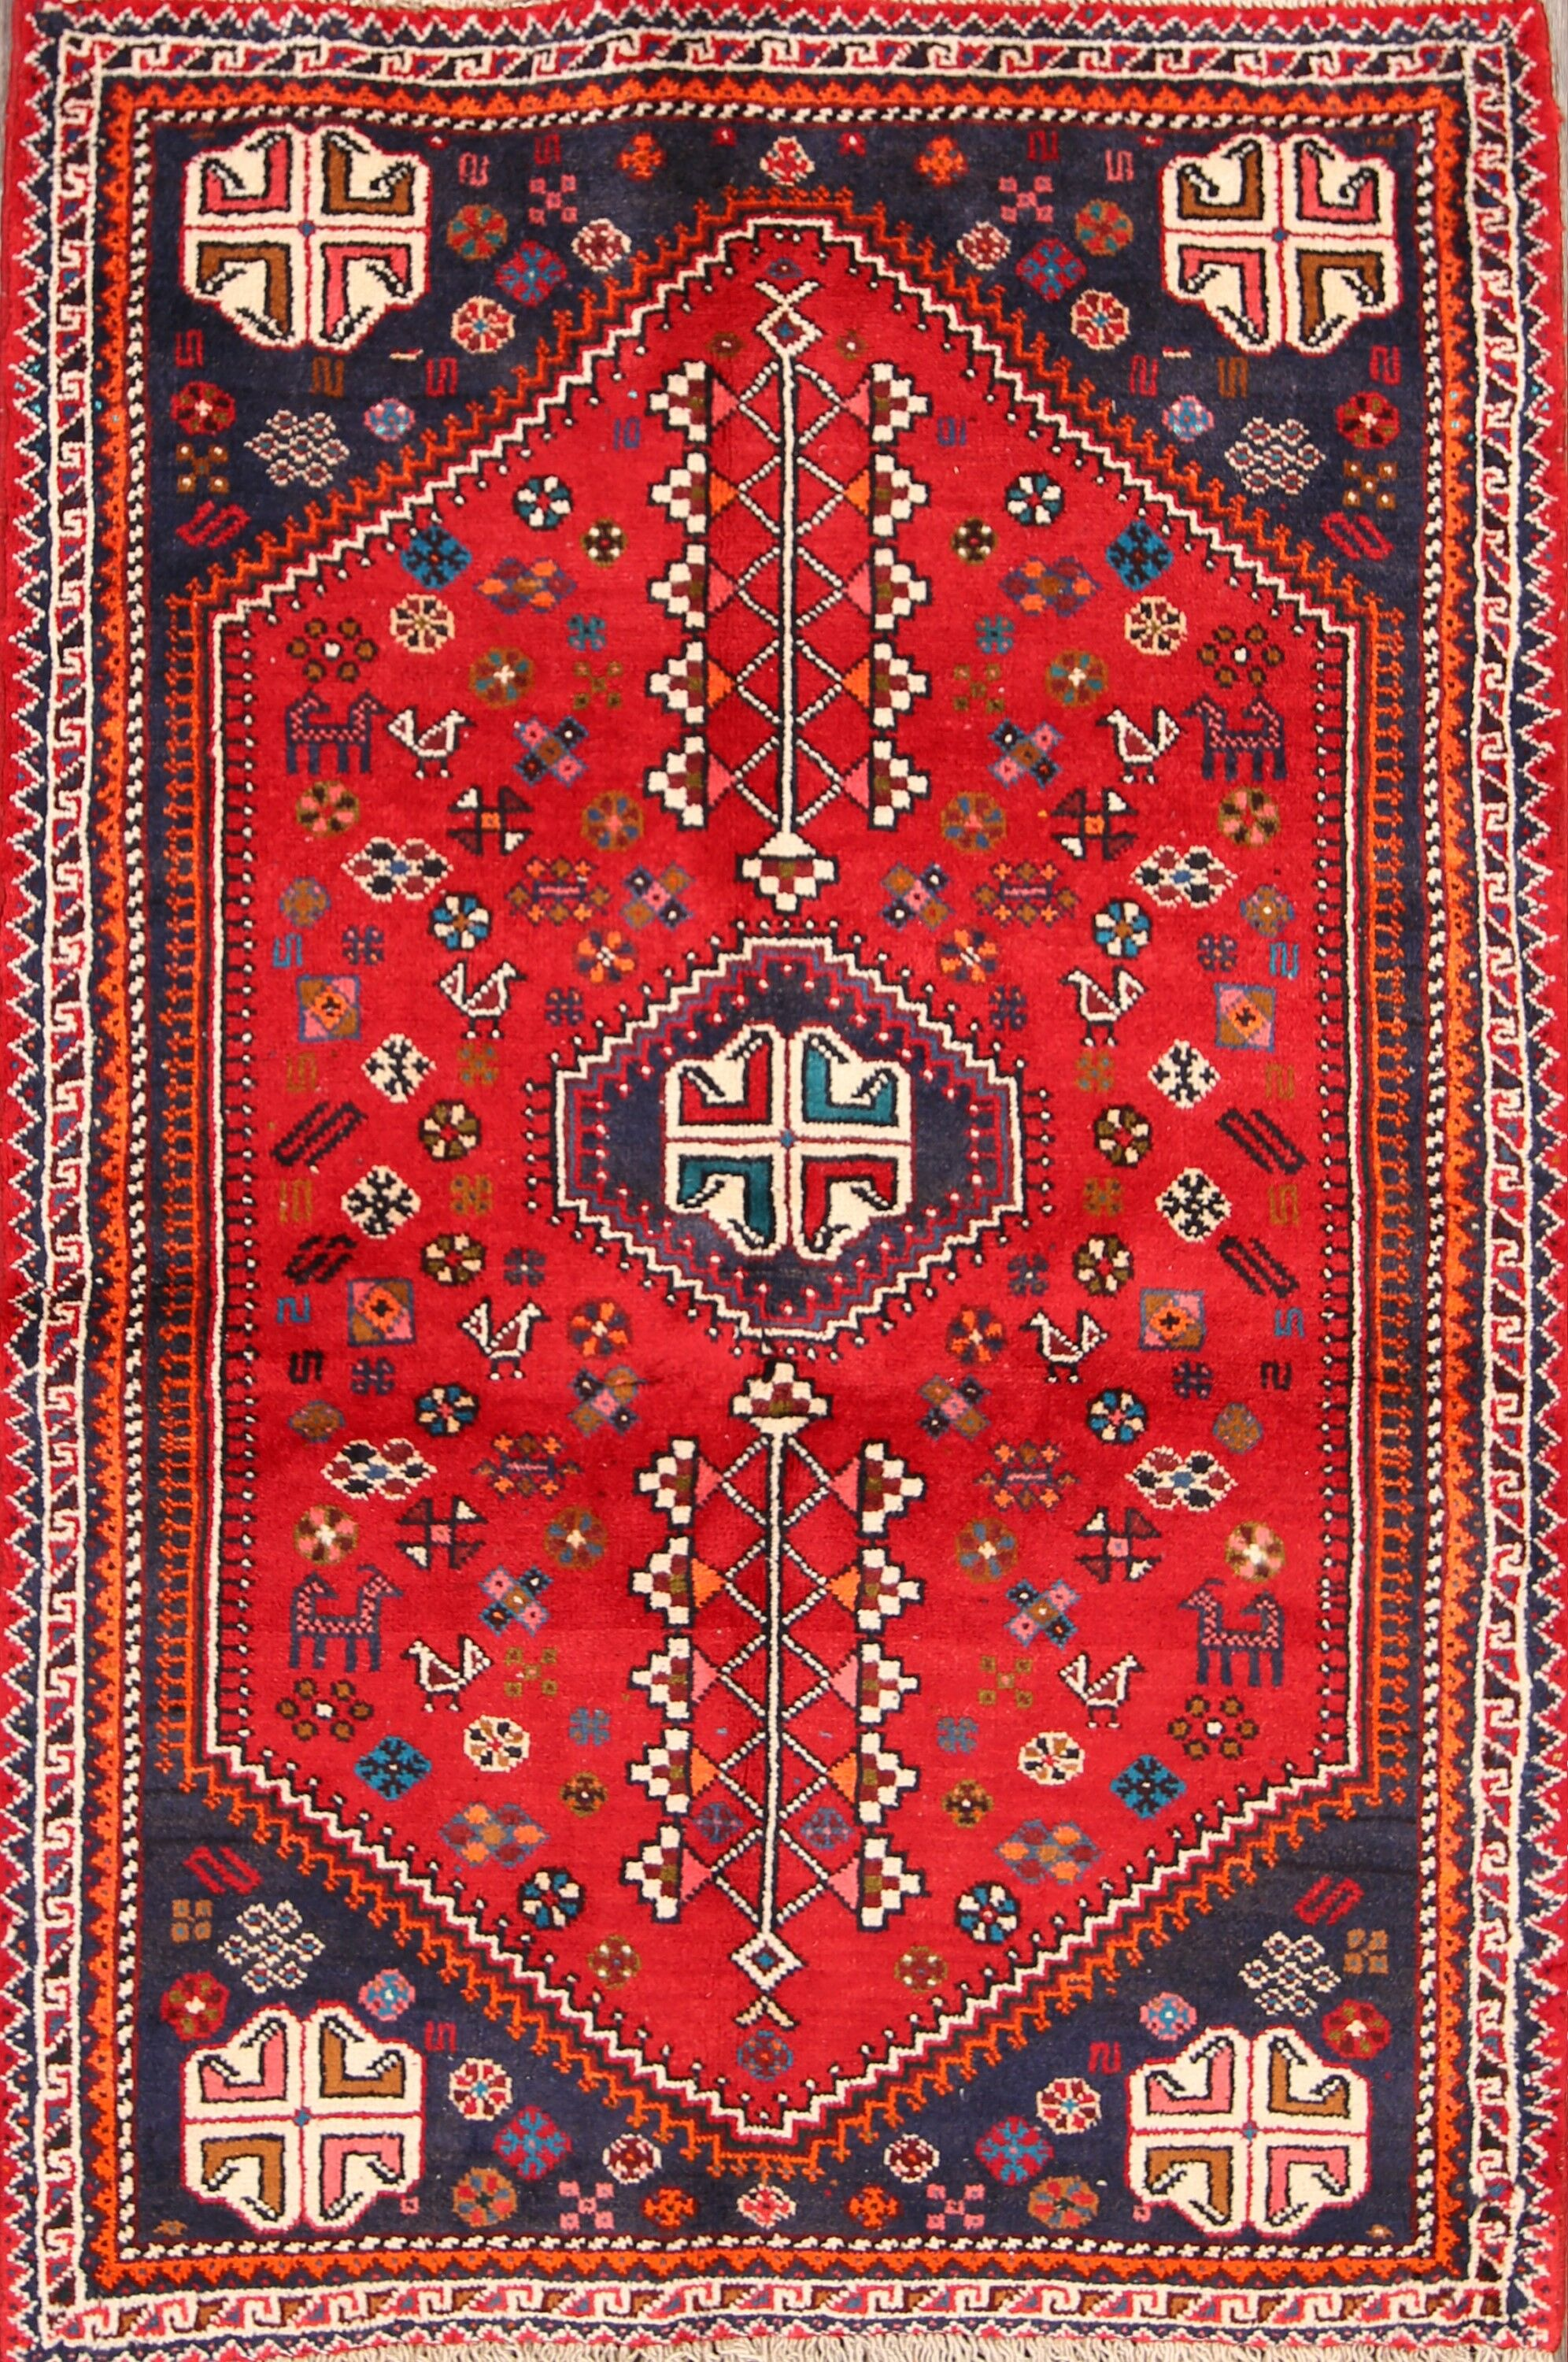 One-of-a-Kind Traditional Abadeh Shiraz Persian Hand-Knotted 3'7